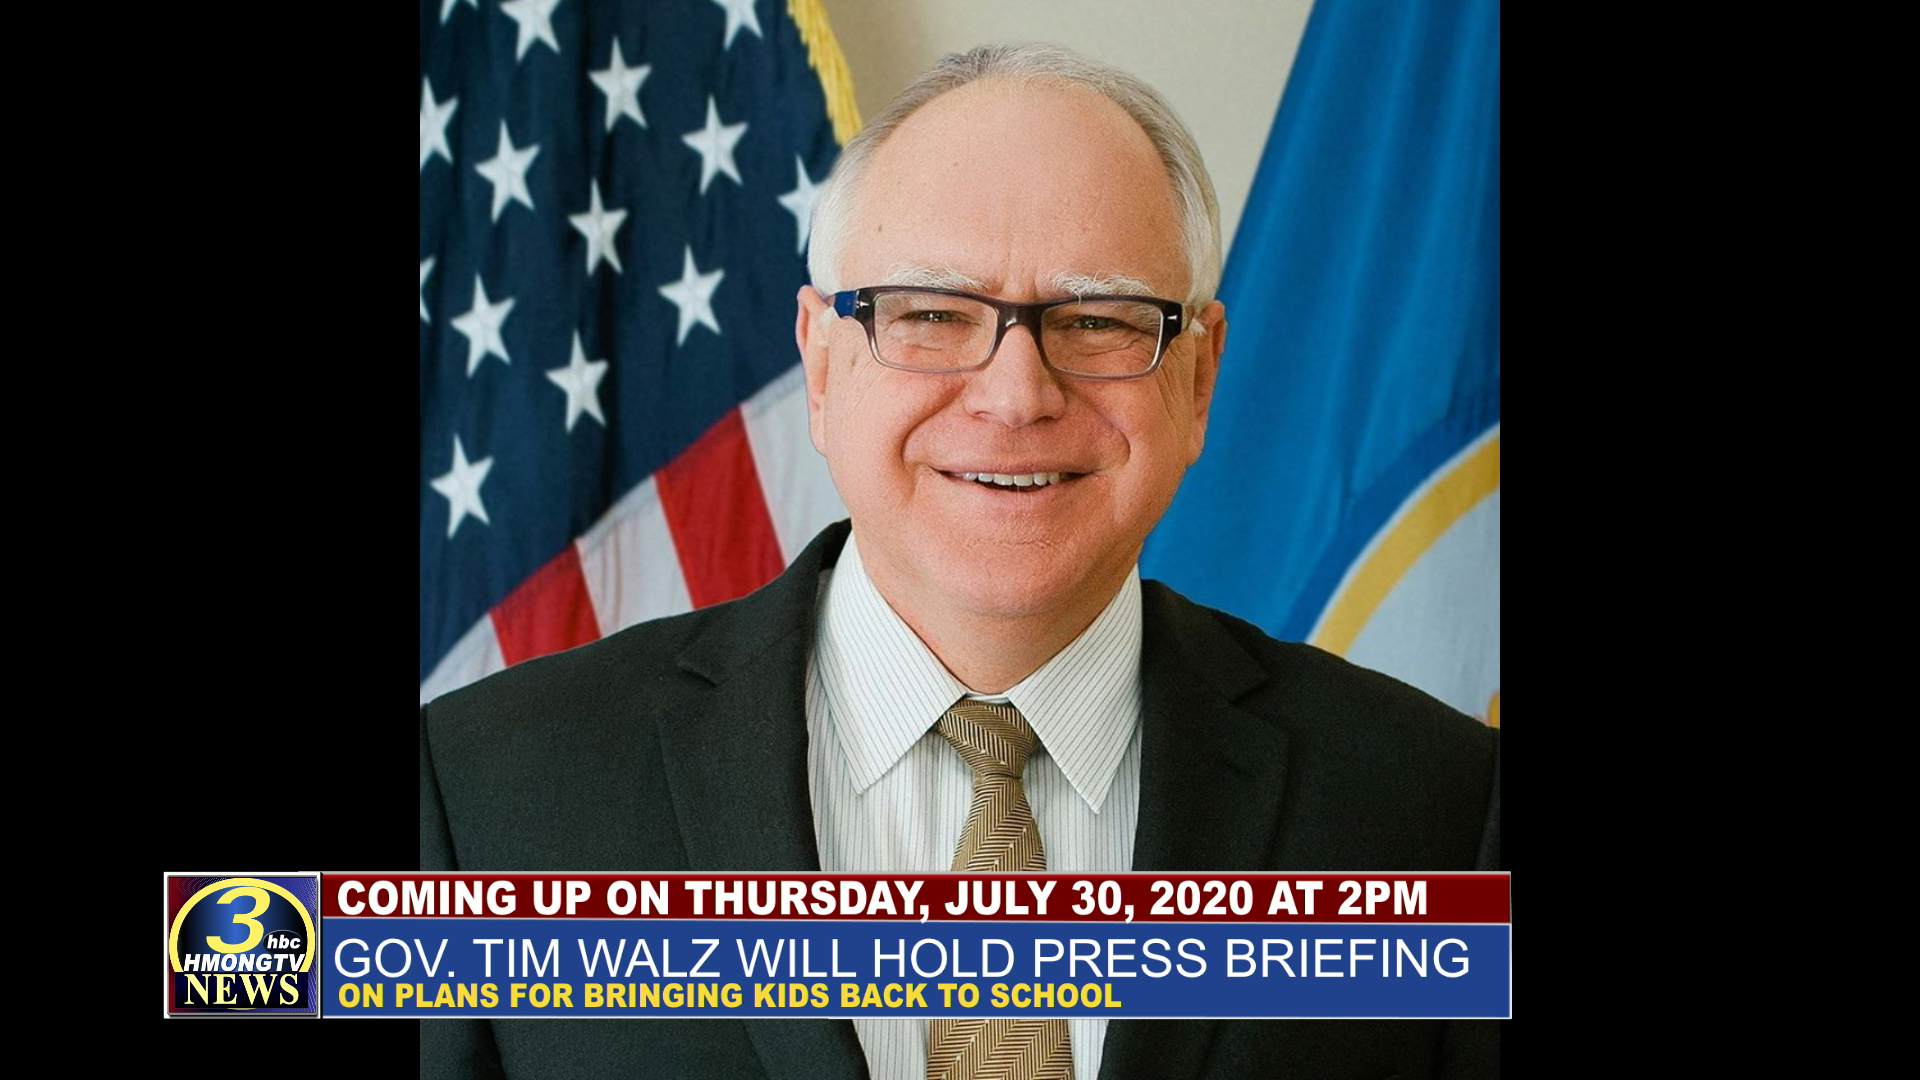 GOV. TIM WALZ EXPECTED TO TALK ABOUT PLANS FOR REOPENING SCHOOLS.